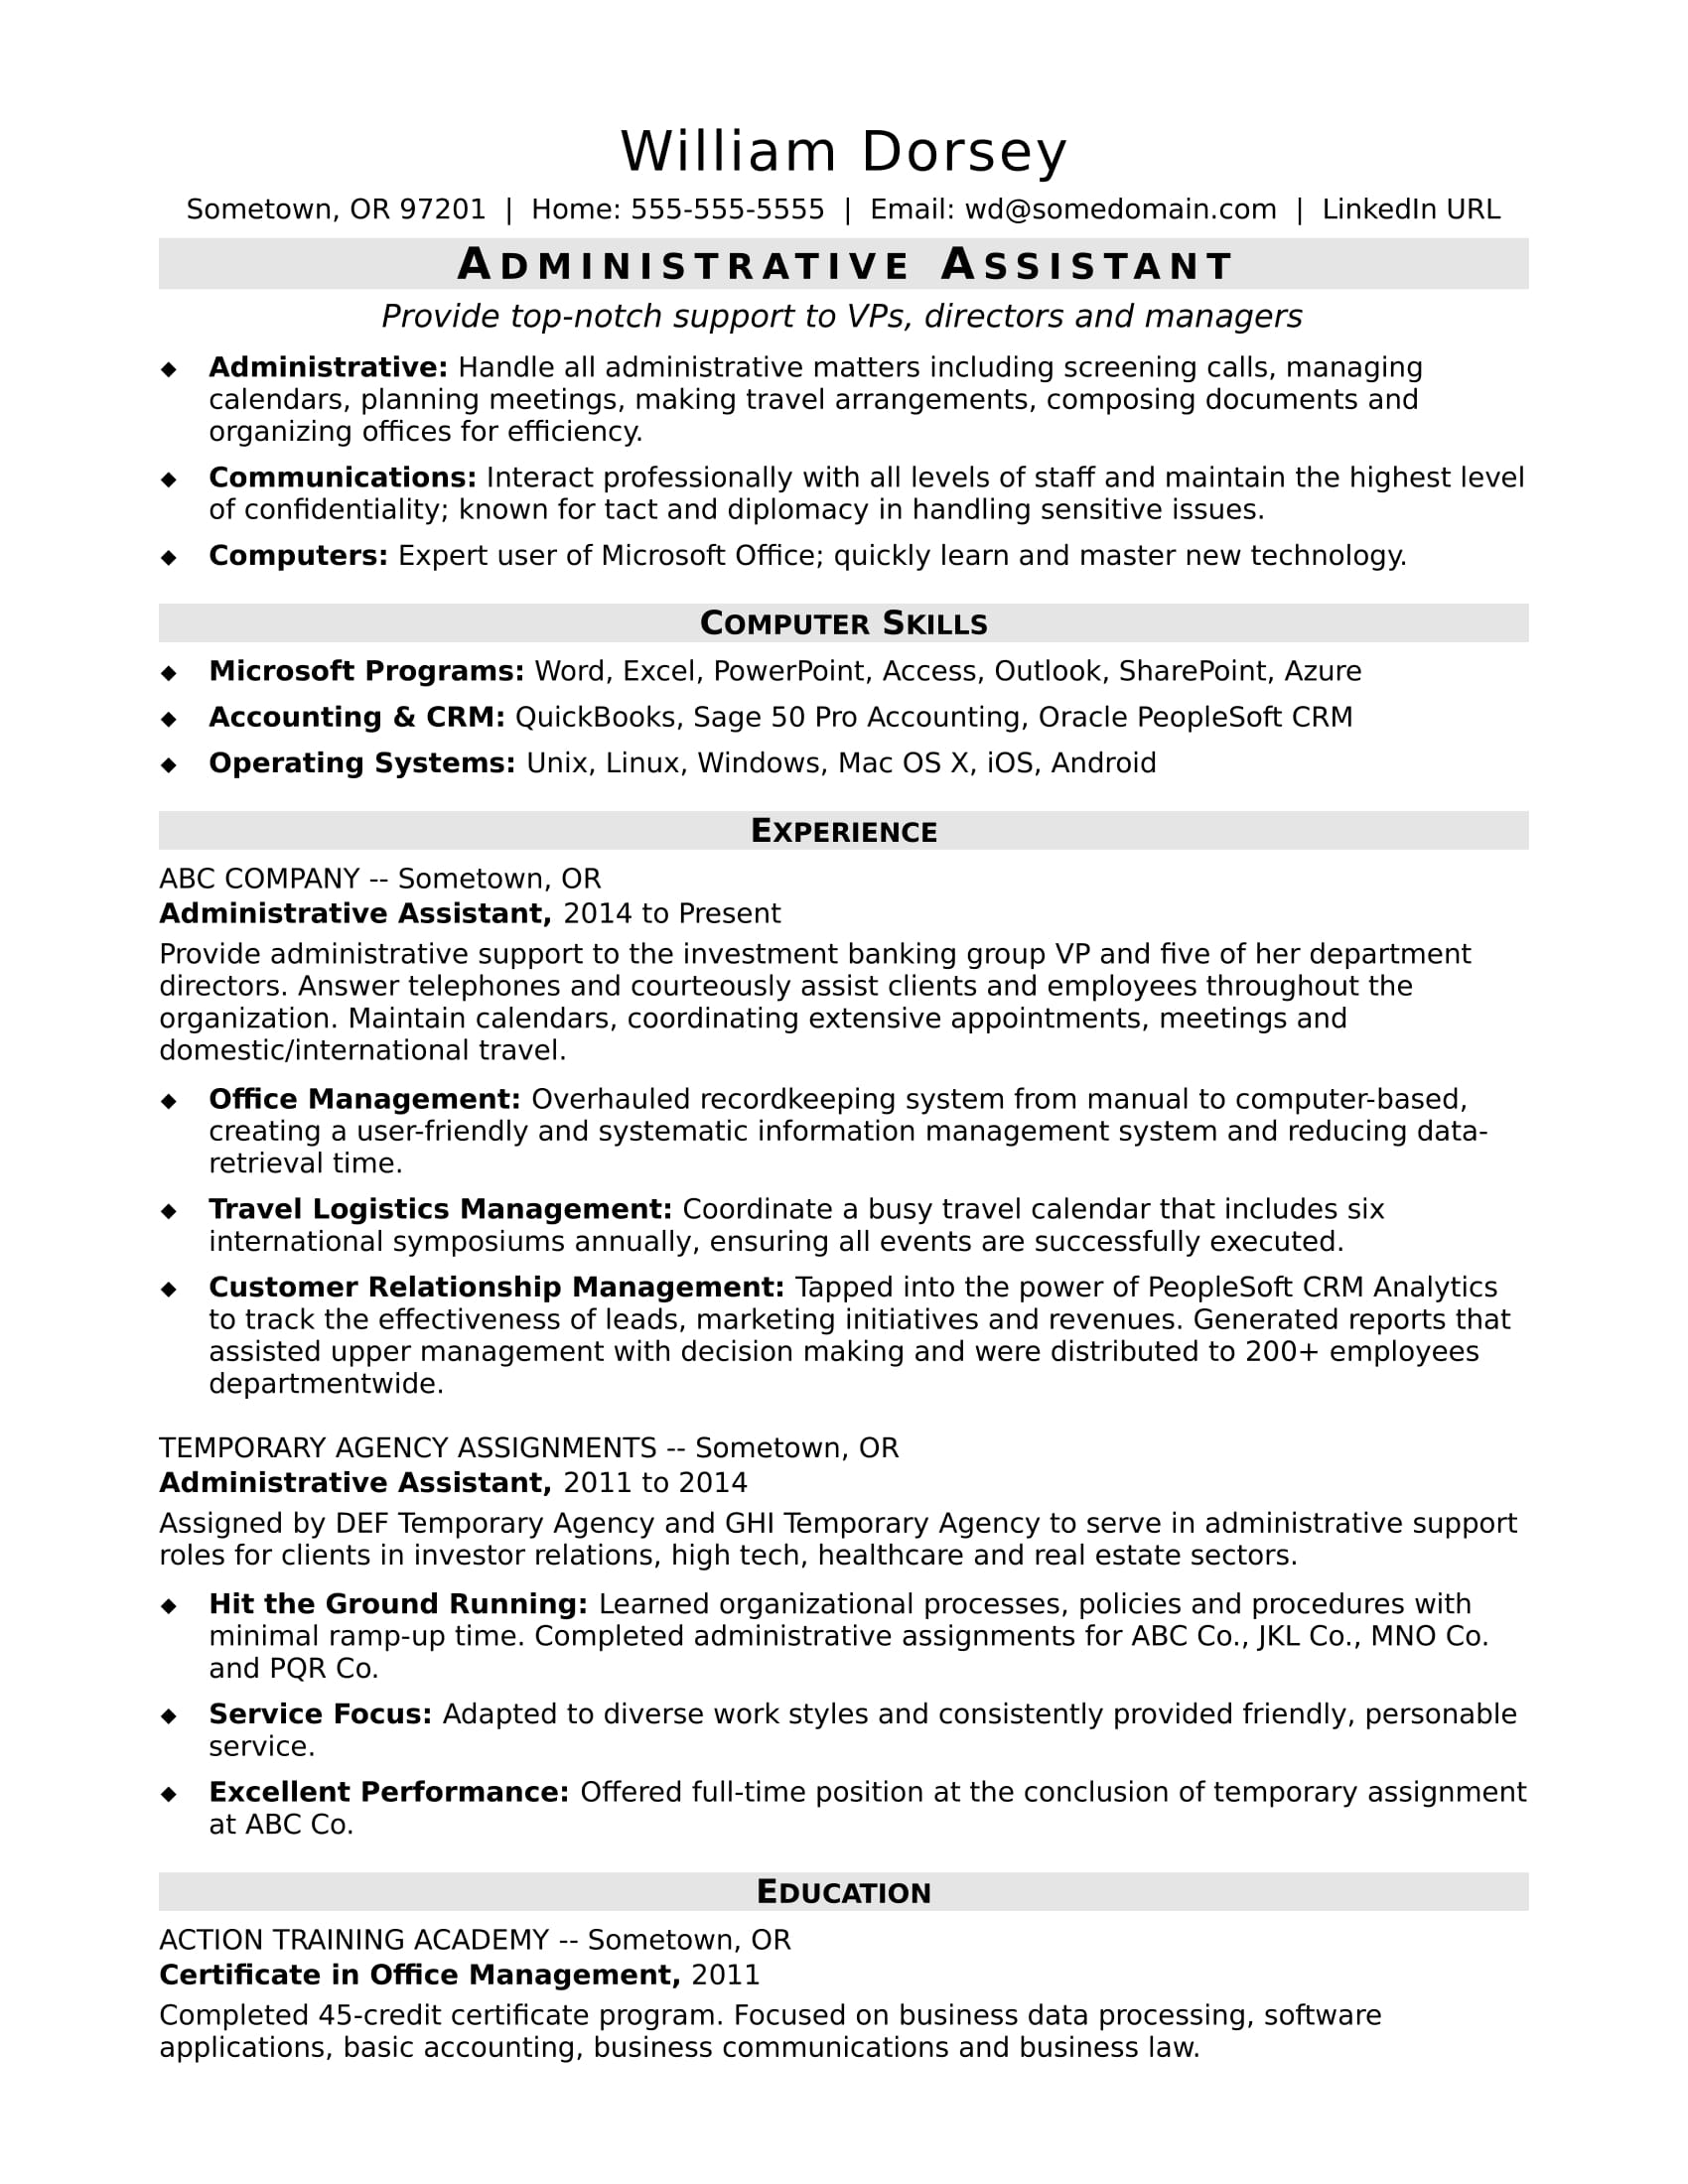 Sample Resumes For Administrative Assistant Positions Midlevel Administrative Assistant Resume Sample Monster